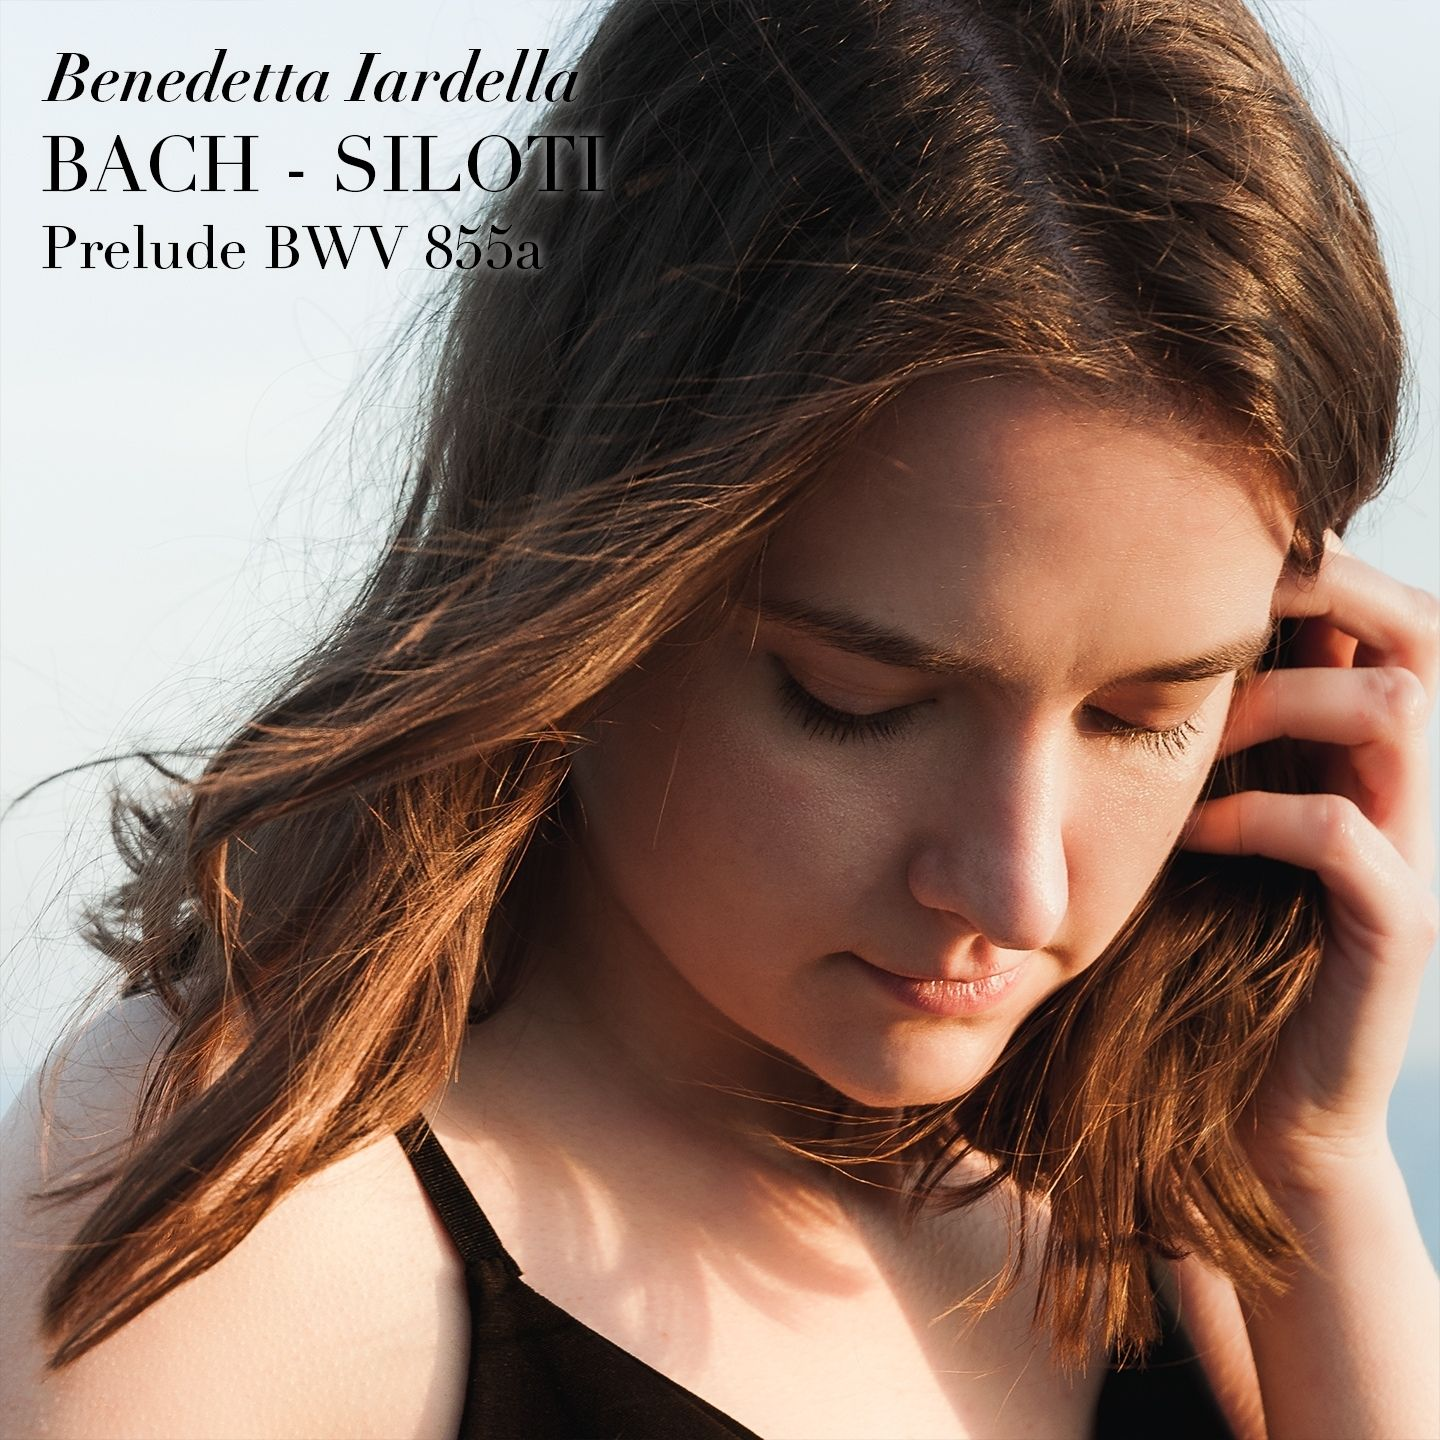 The Well-Tempered Clavier, Book I: Prelude in E Minor, BWV 855a